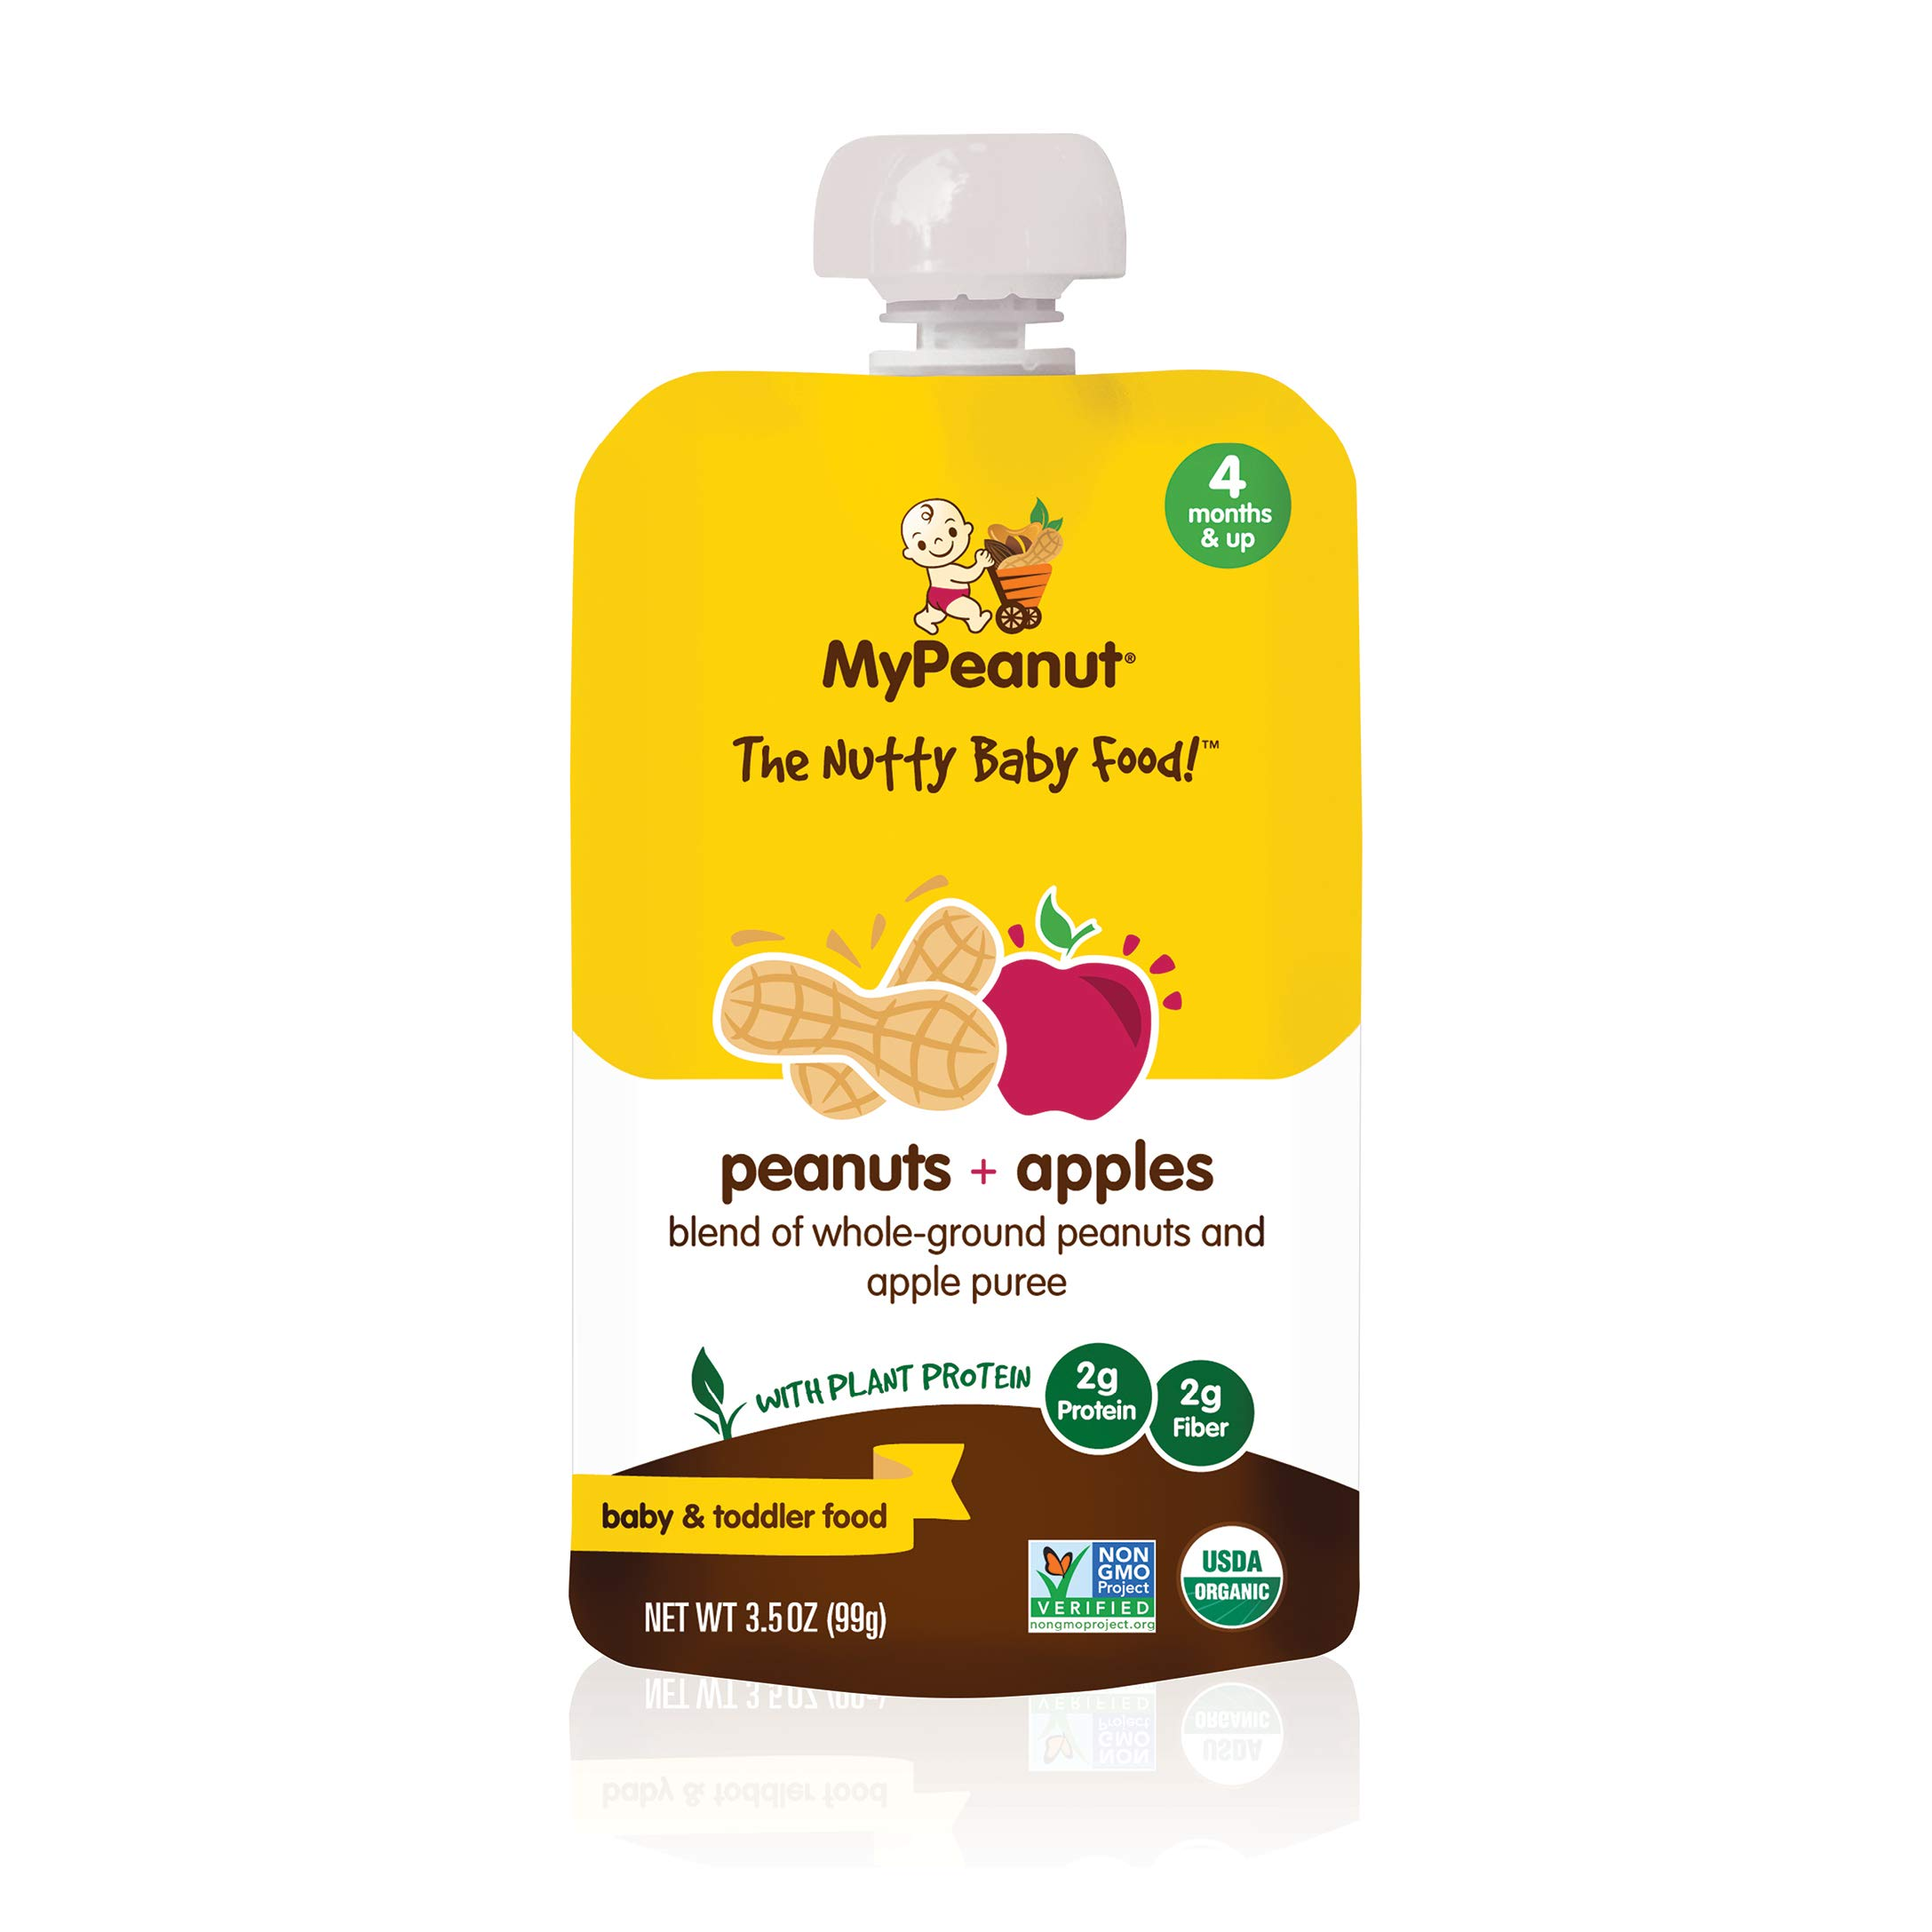 MyPeanut Baby Food, Organic Stage 1 Peanut and Apple Puree for Introducing and Feeding Babies and Toddlers Nuts, Non-GMO, BPA Free 3.5 oz Pouch, 24 Pack